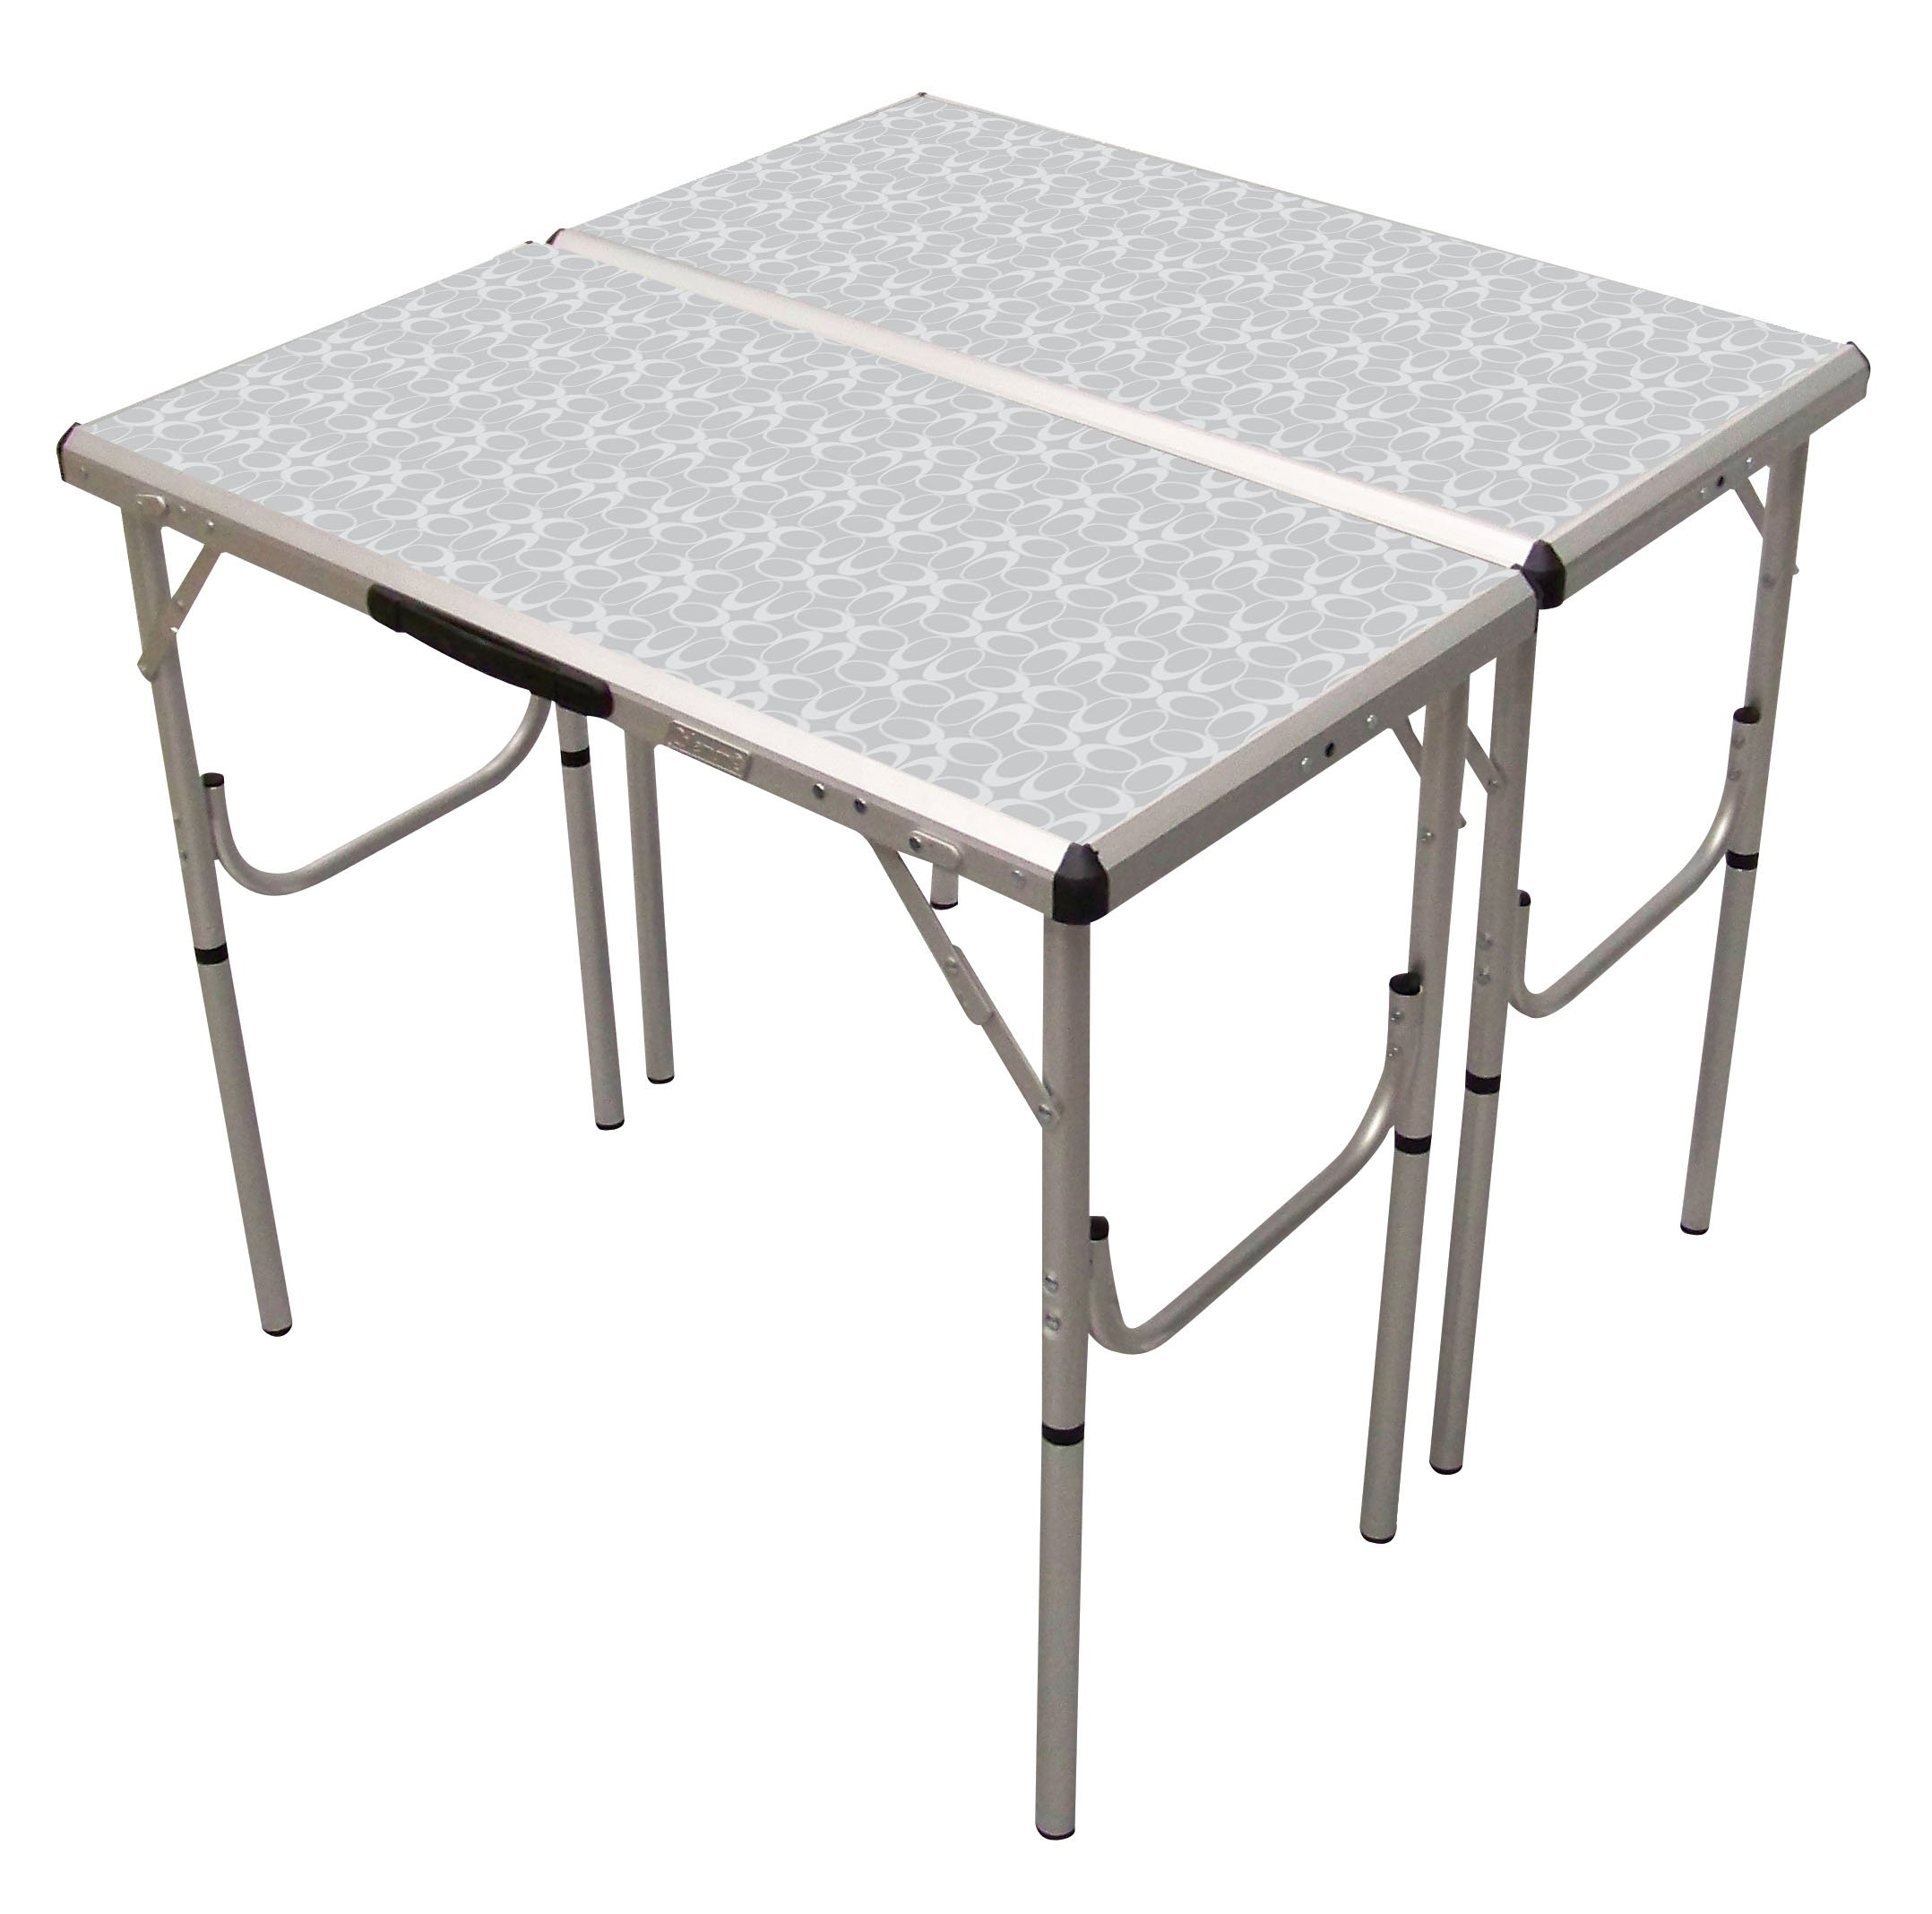 Coleman Pack-Away 4-in-1 Adjustable Height Folding Camping Table by Coleman